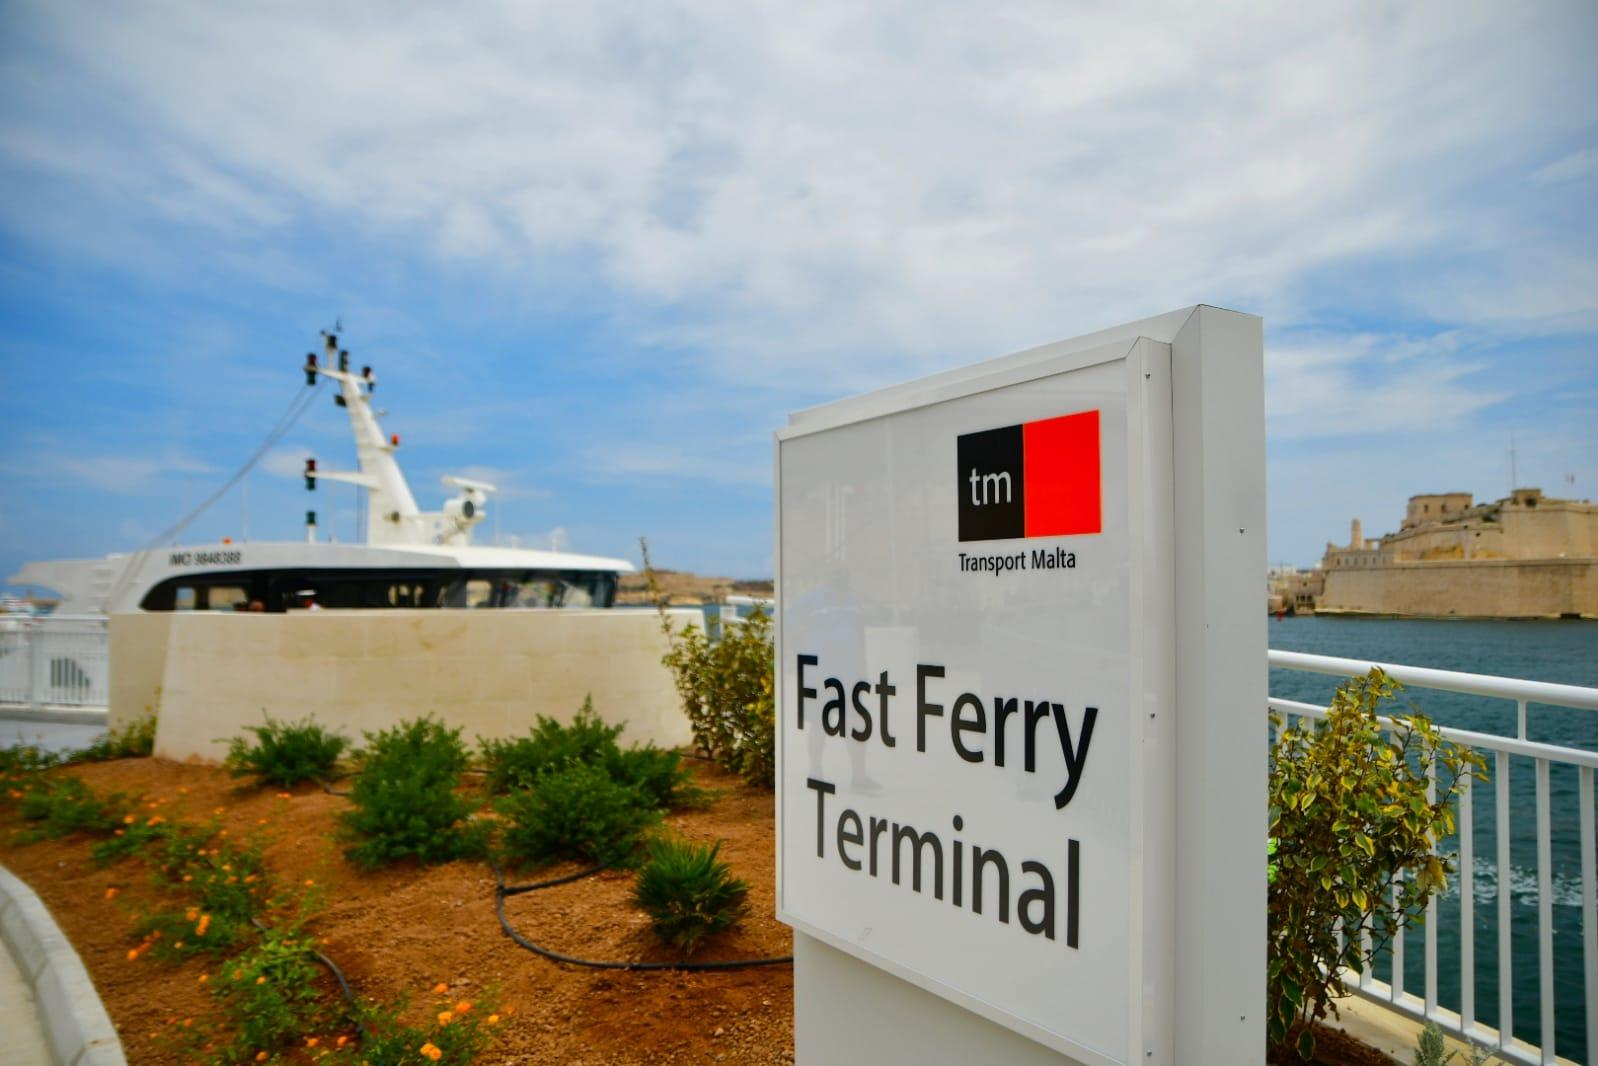 New terminals were built in Valletta and Mġarr in a month. Photo: Jonathan Borg